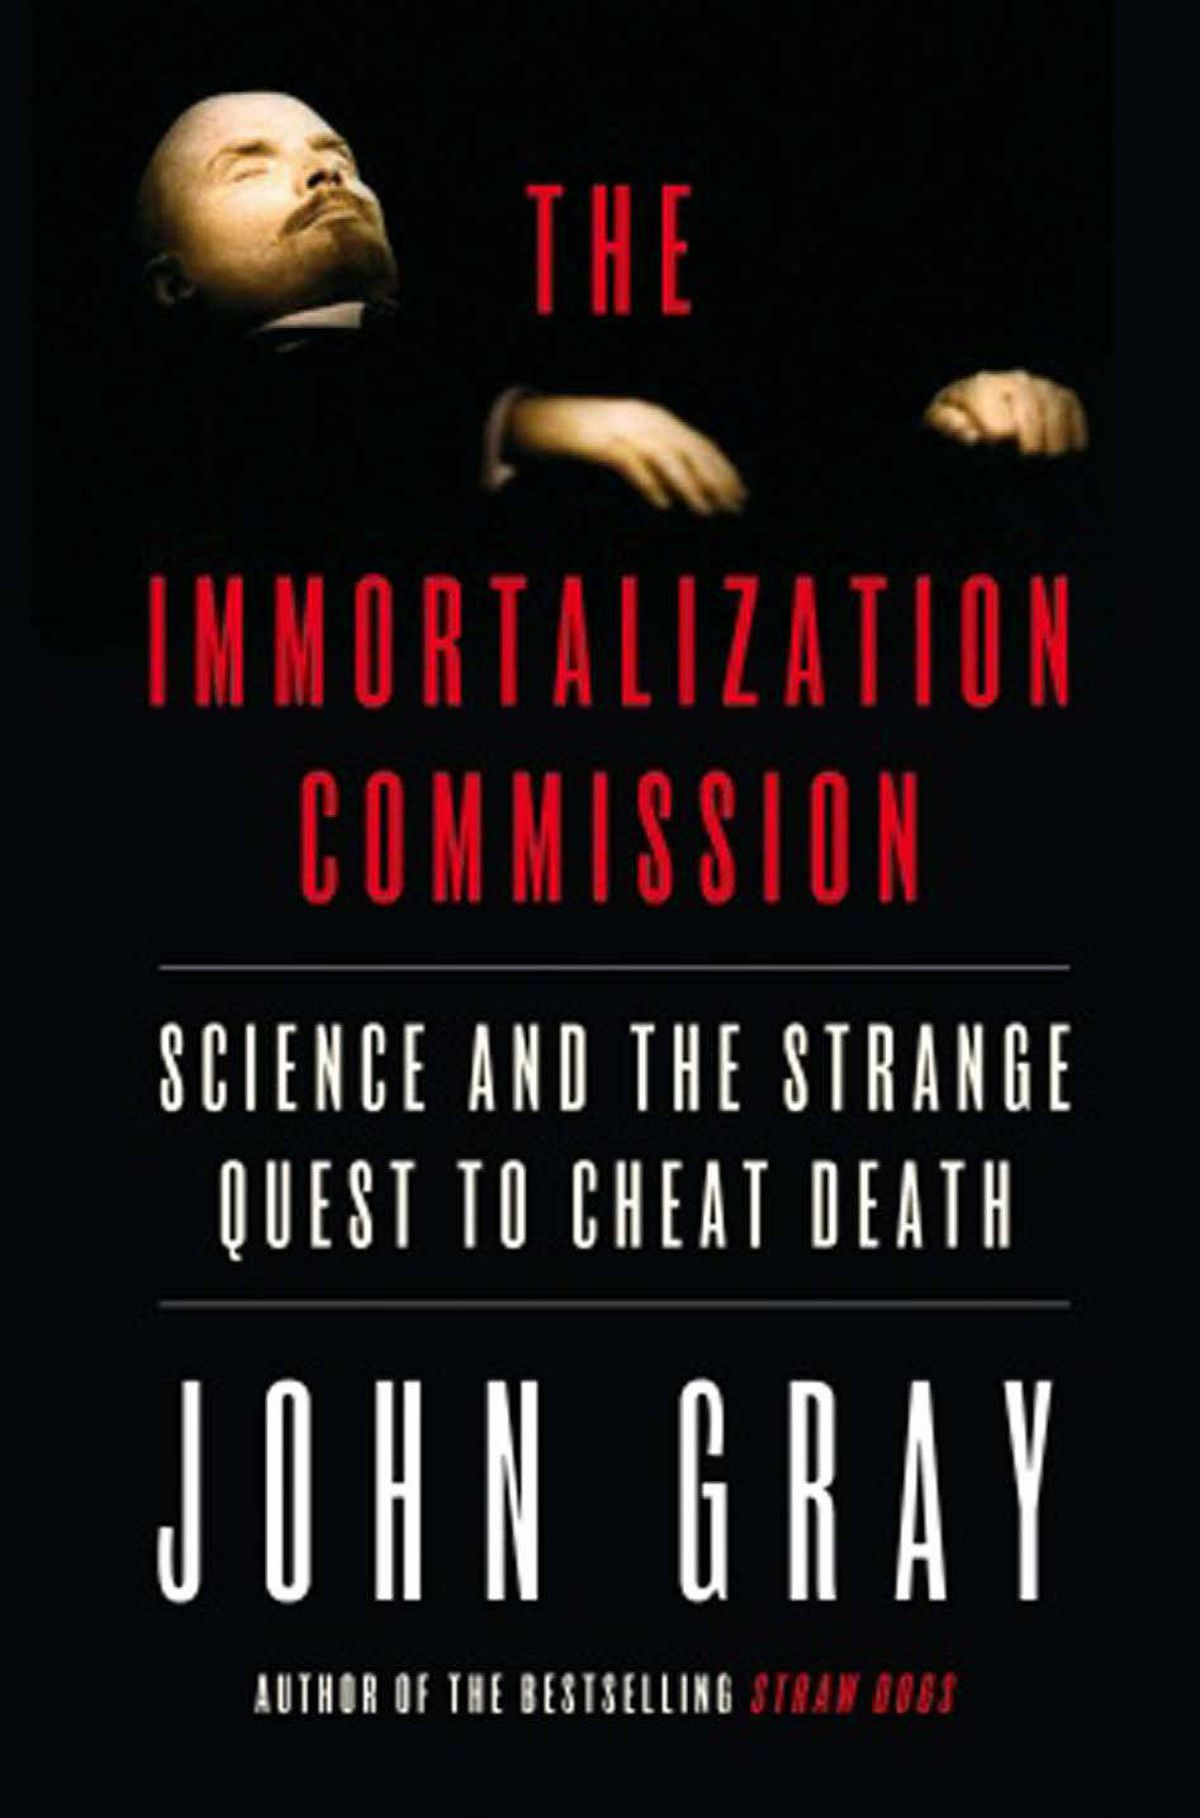 """THE IMMORTALIZATION COMMISSION Science and the Strange Quest to Cheat Death By John Gray (Doubleday Canada) Gray's focus is the revolt against death after Darwin, """"claiming that science could give humanity what religion and magic had promised – immortal life."""" As always, Gray is about separating reality from delusion – brilliantly. The astuteness of his thinking, the connections he makes between a wide range of subjects and the clarity of his conclusions make this book extremely satisfying. – M.A.C. Farrant"""